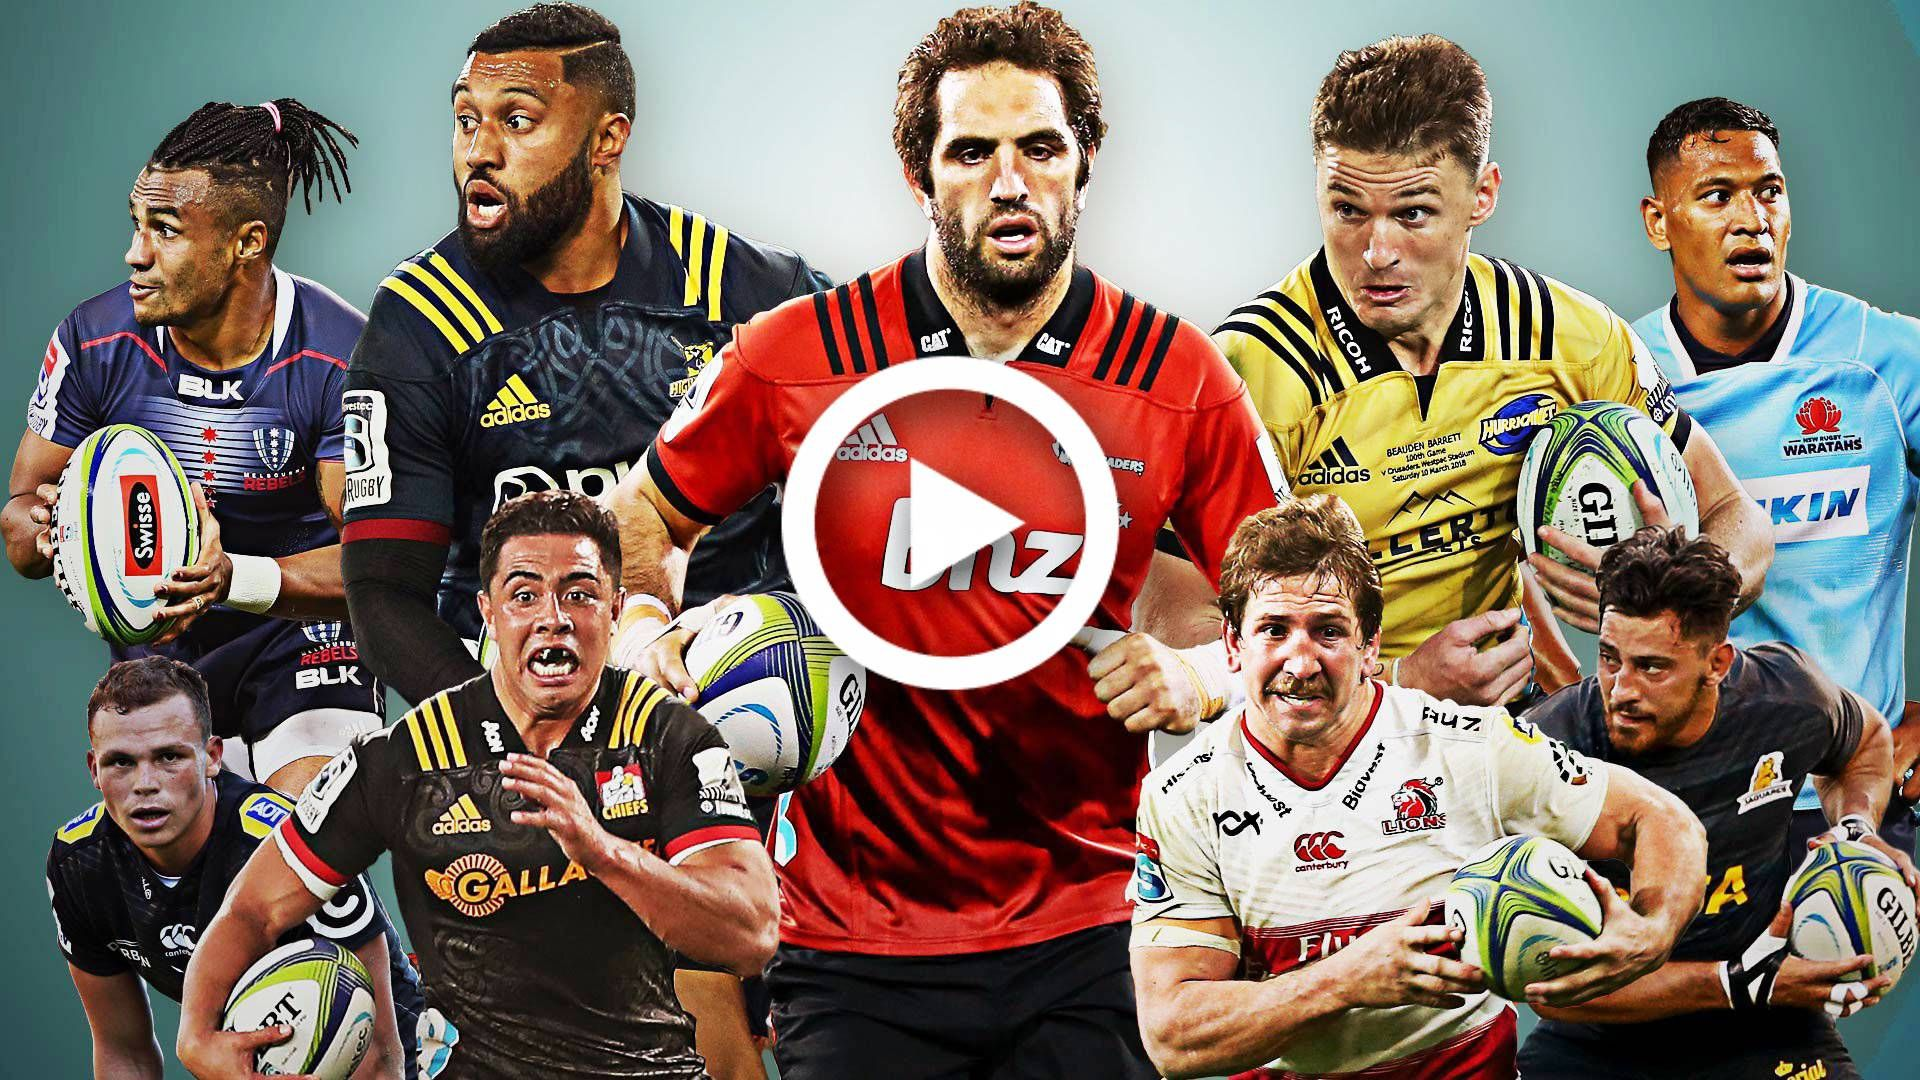 Watch Super Rugby Game 2020 Live Stream, TV Channel